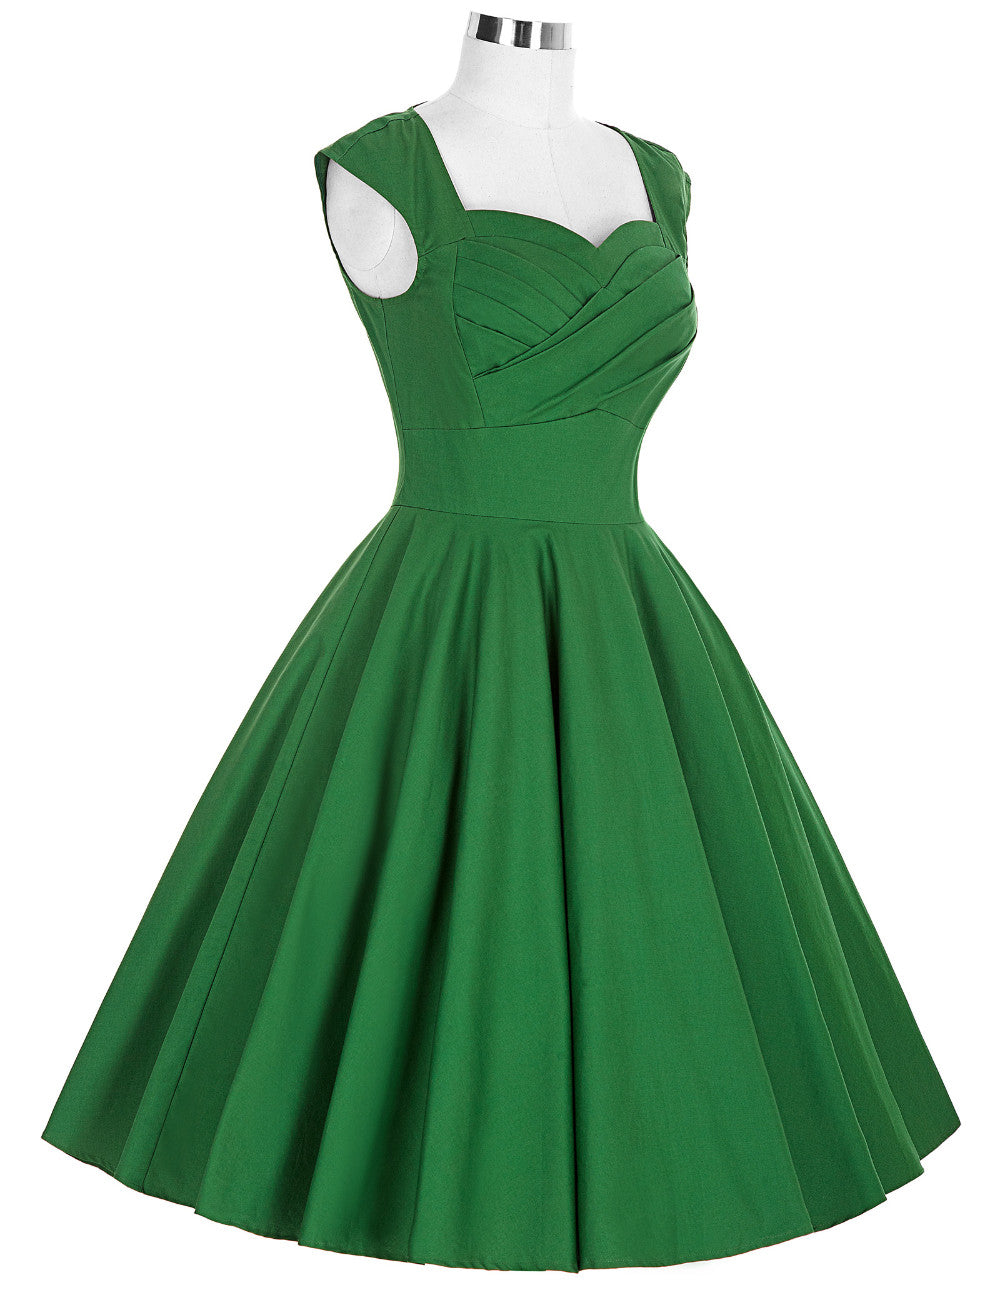 The Belle Dress in Dark Emerald Green by Ponyboy Vintage Clothing!